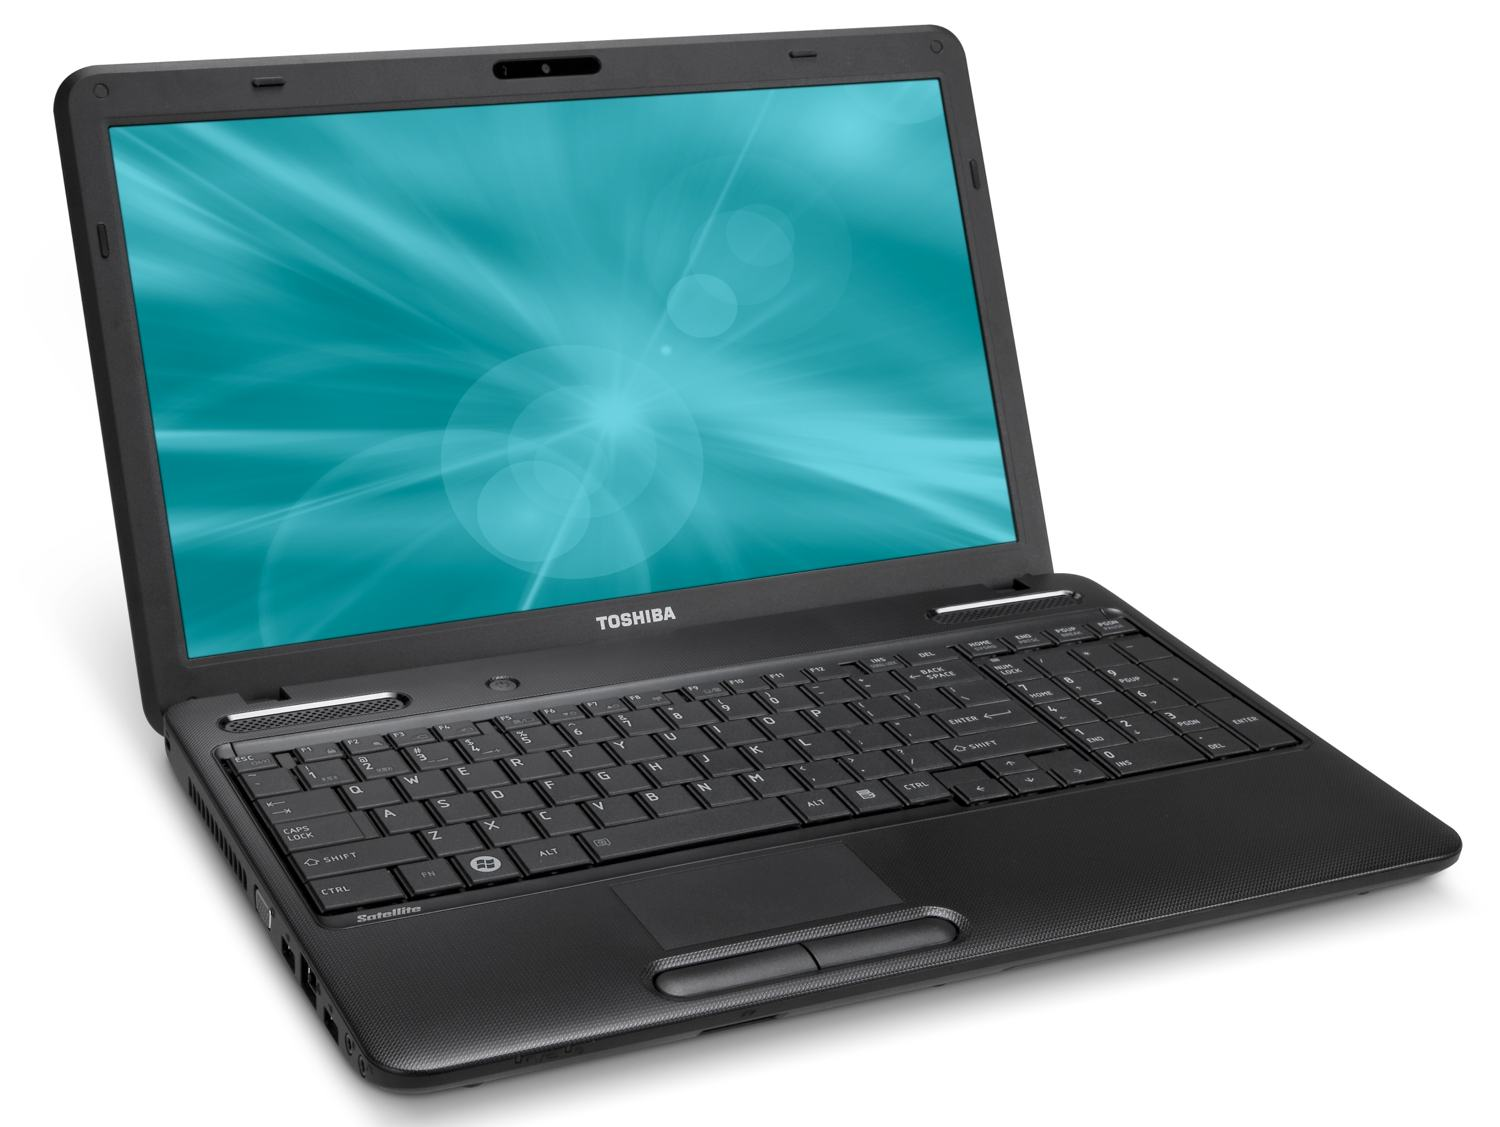 Toshiba Satellite c655 Drivers Download